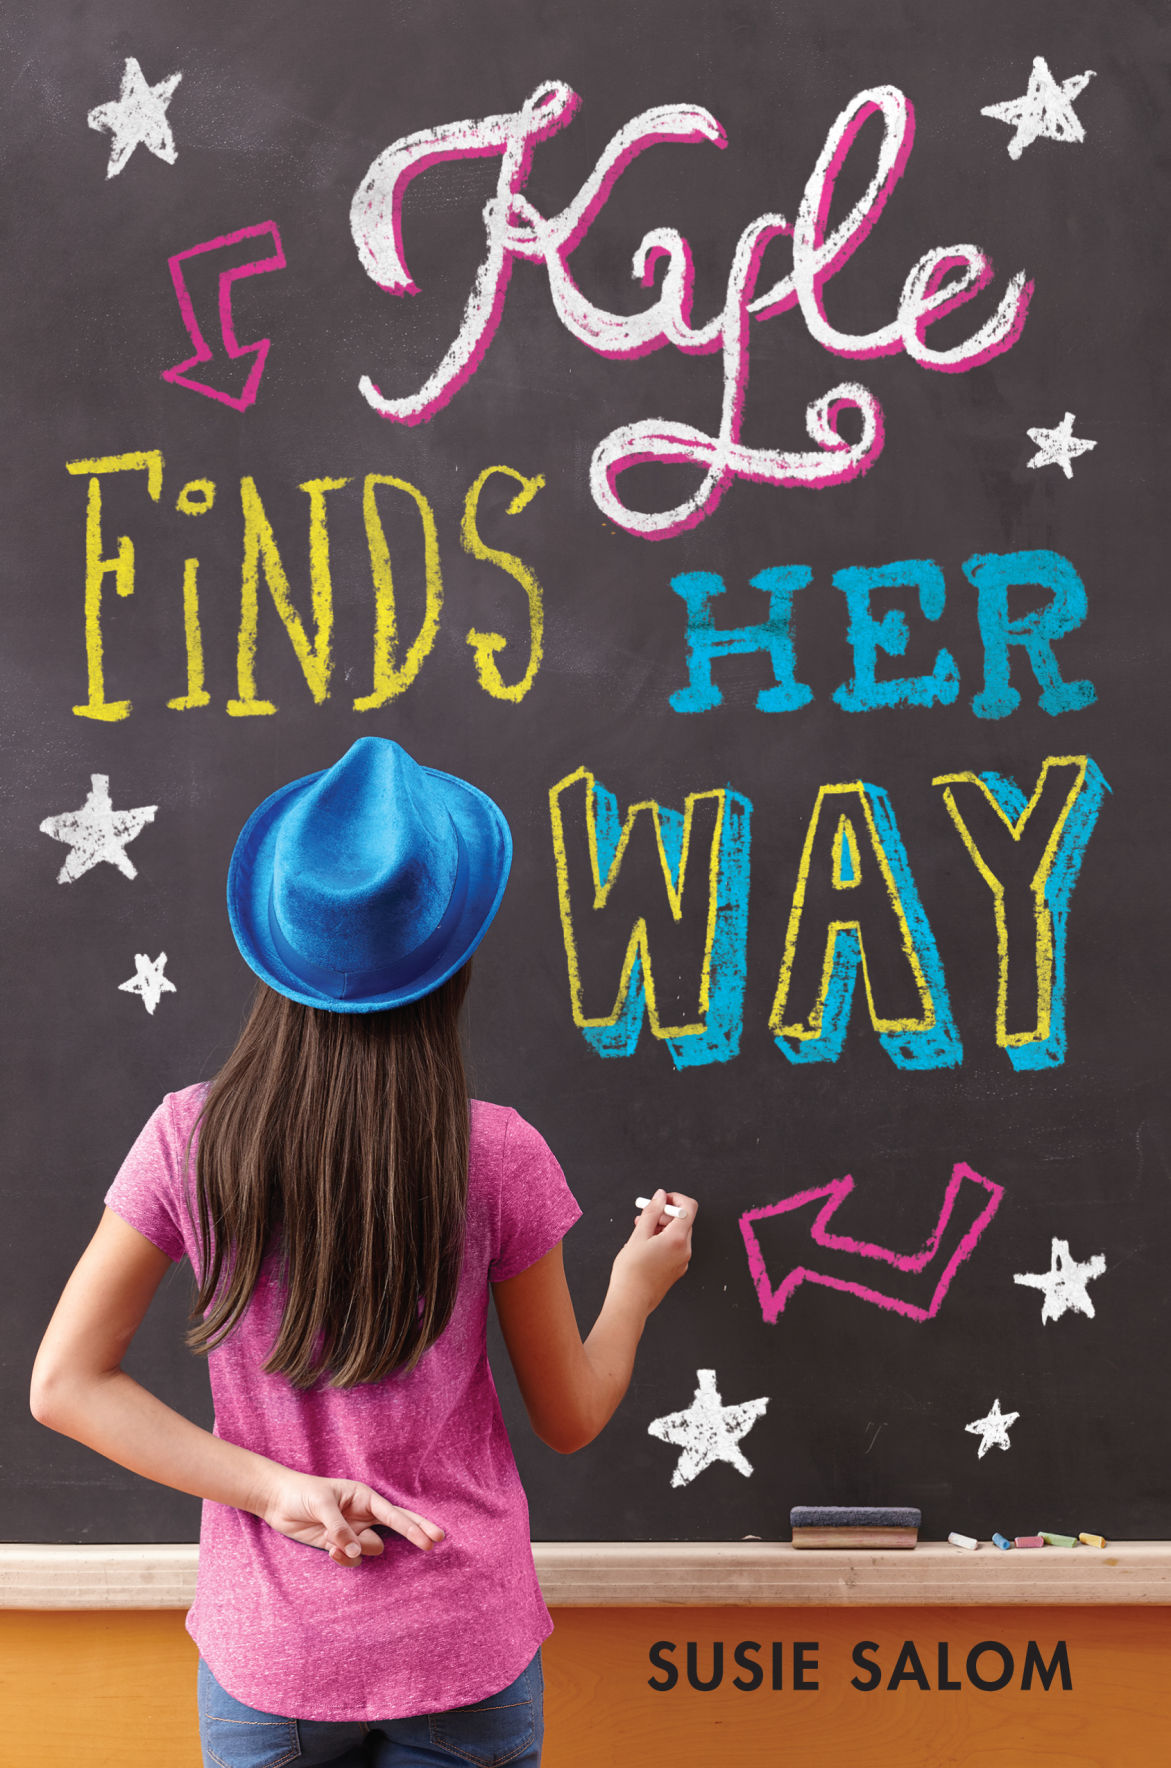 """Kyle Finds Her Way"" is available on Amazon and at Barnes & Noble."